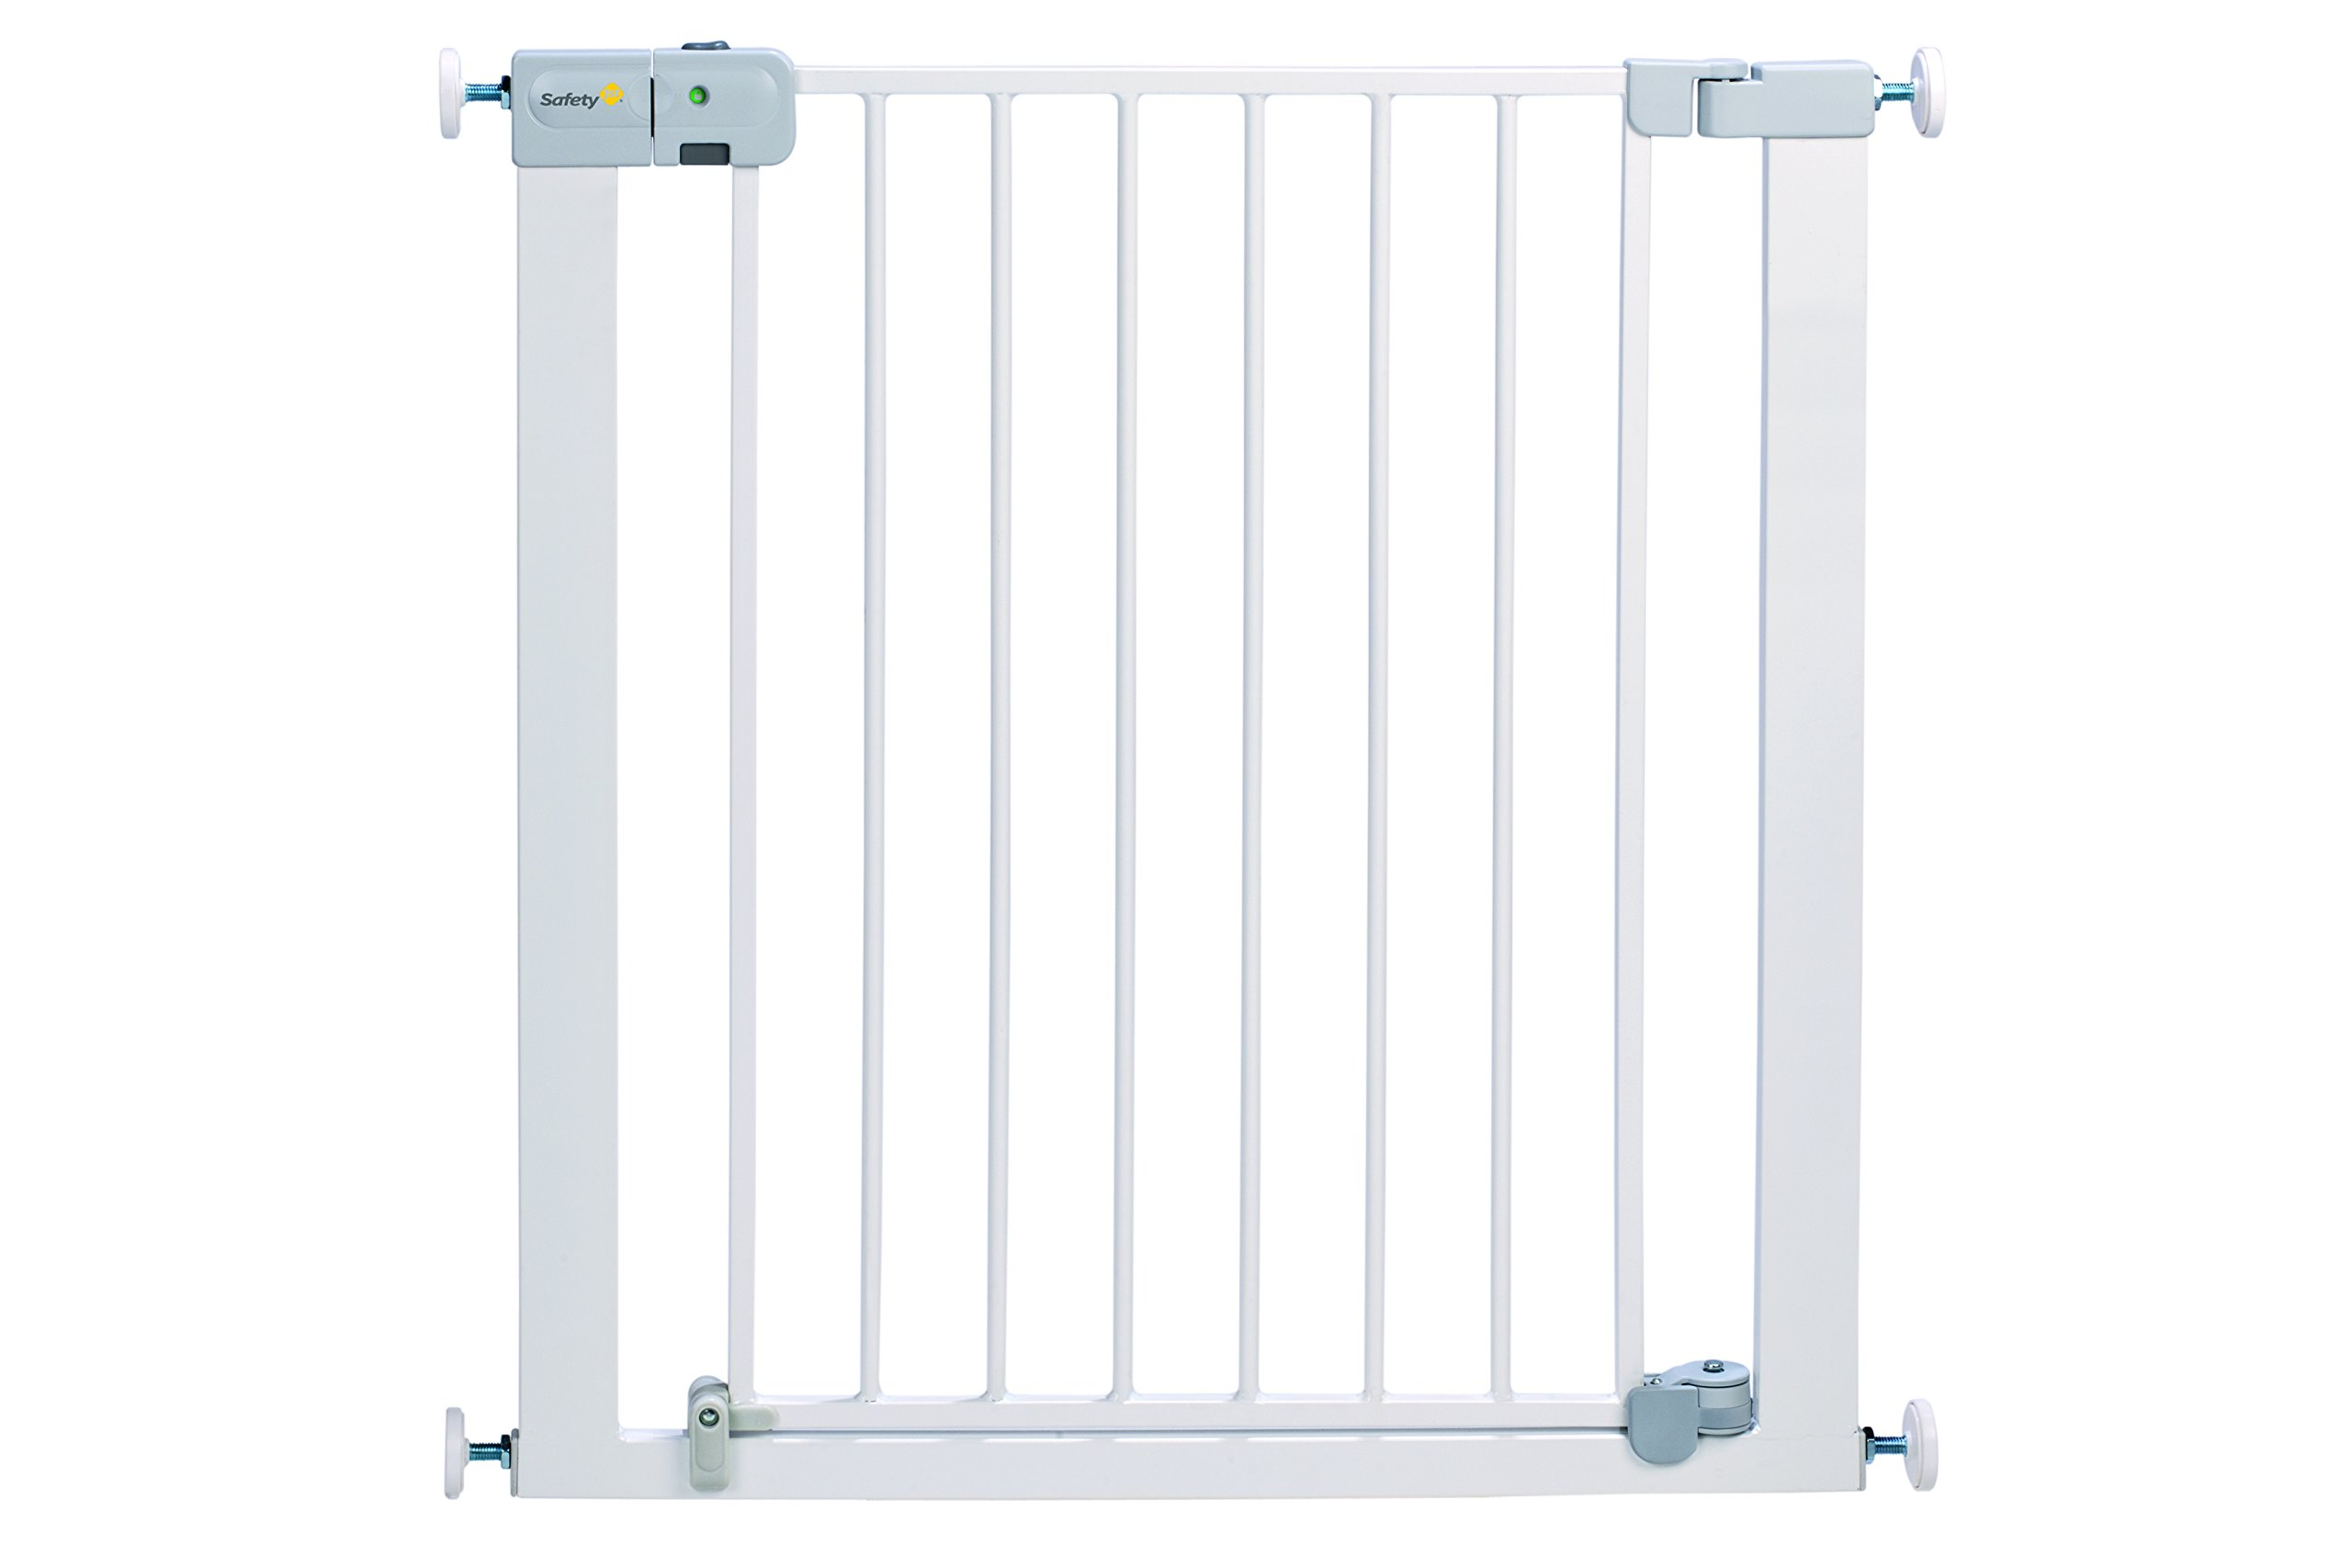 Safety 1st Securtech Auto Close Metal Gate, White  'True' Auto Close Gate which automatically closes for all opening angles Adjusts to fit openings from 73 cm to 80 cm Extends up to 136 cm with separately available extensions 1